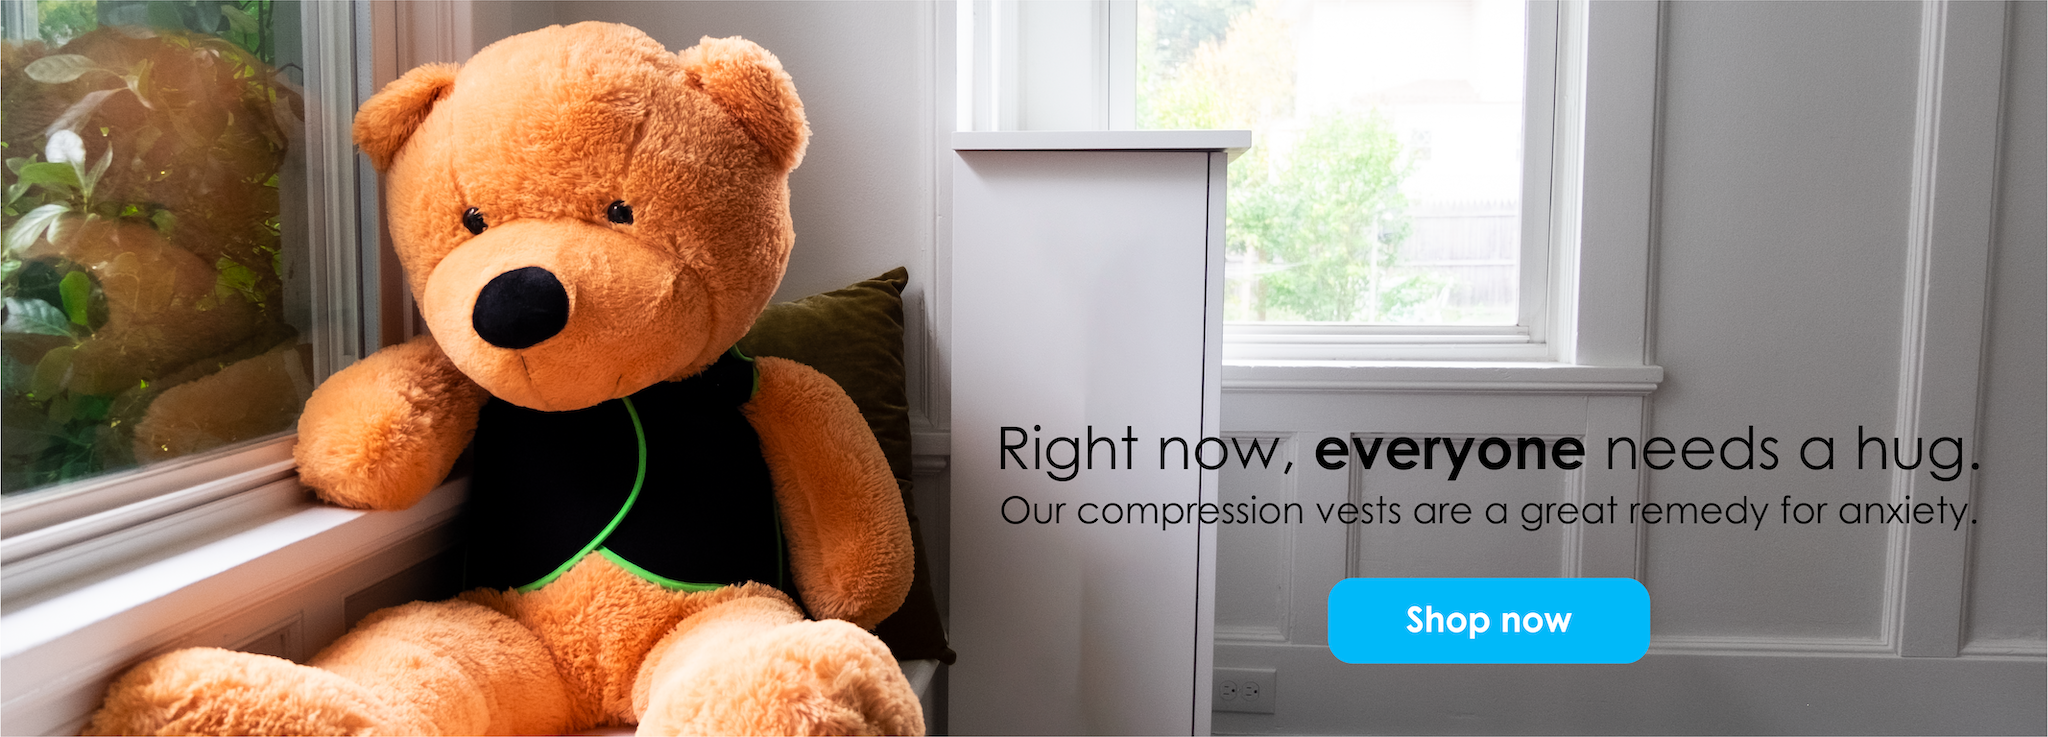 Anxious stuffed bear wearing PunkinHug compression vest